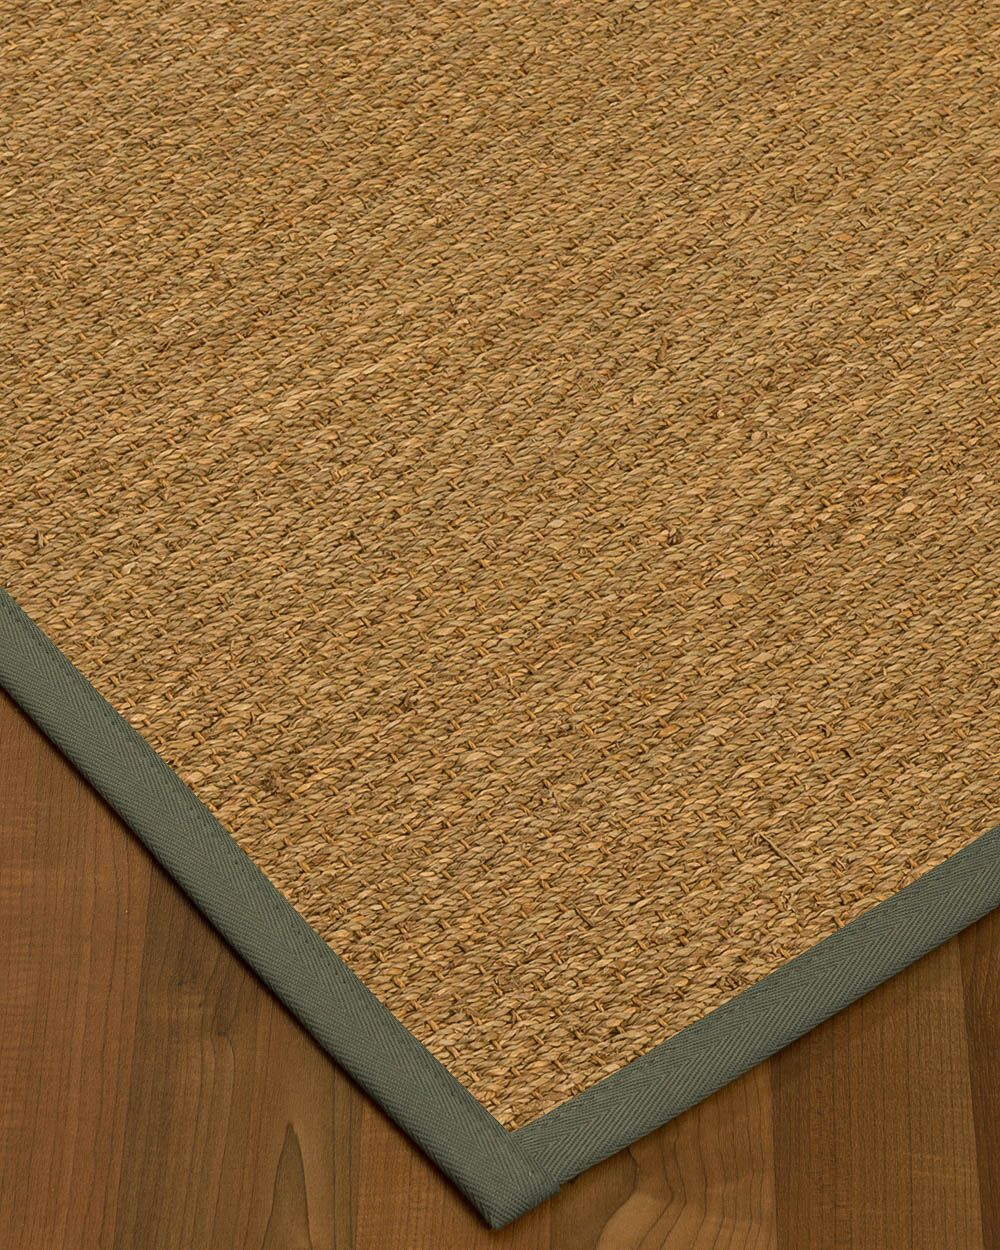 Anya Border Hand-Woven Beige/Stone Area Rug Rug Size: Rectangle 9' x 12', Rug Pad Included: Yes